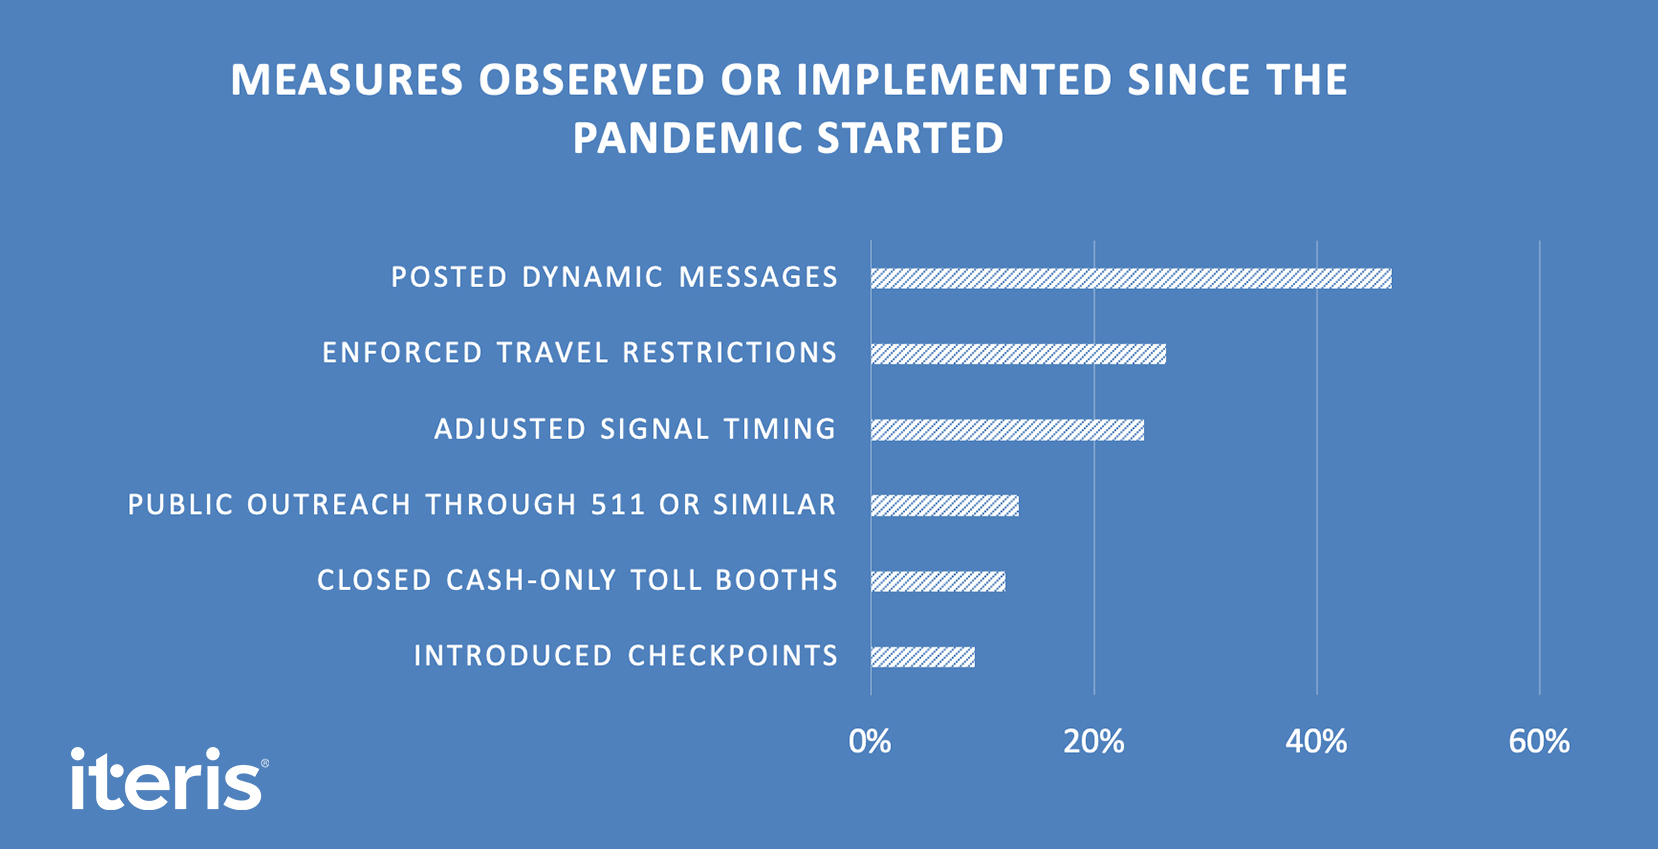 Measures observed or implemented since the pandemic started